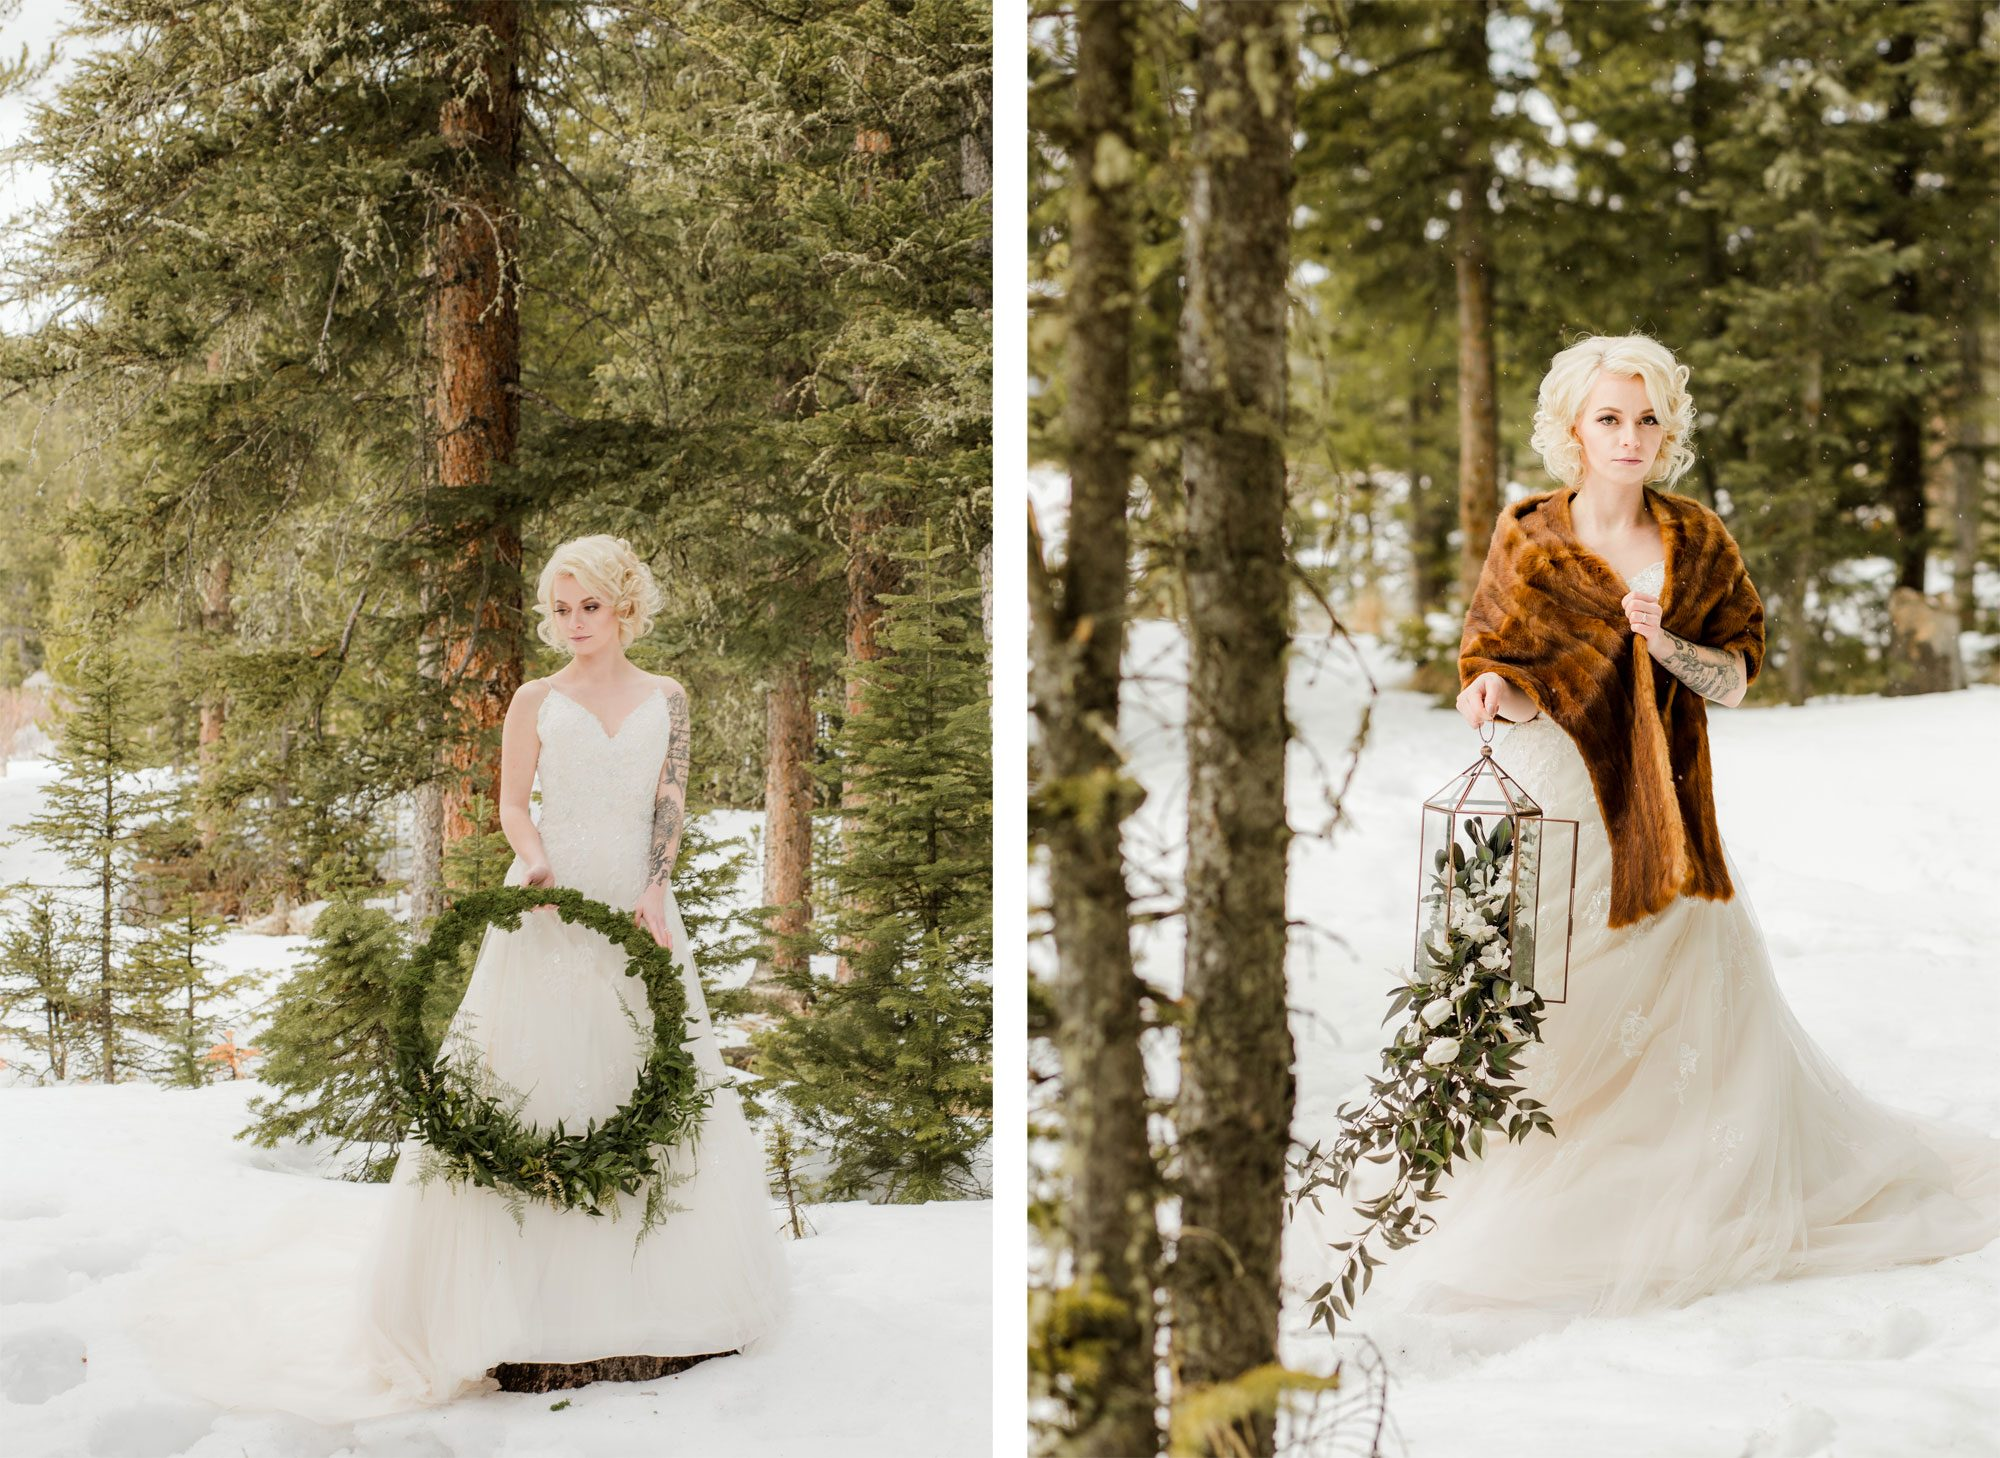 Bride with floral wreath and lantern in the snow